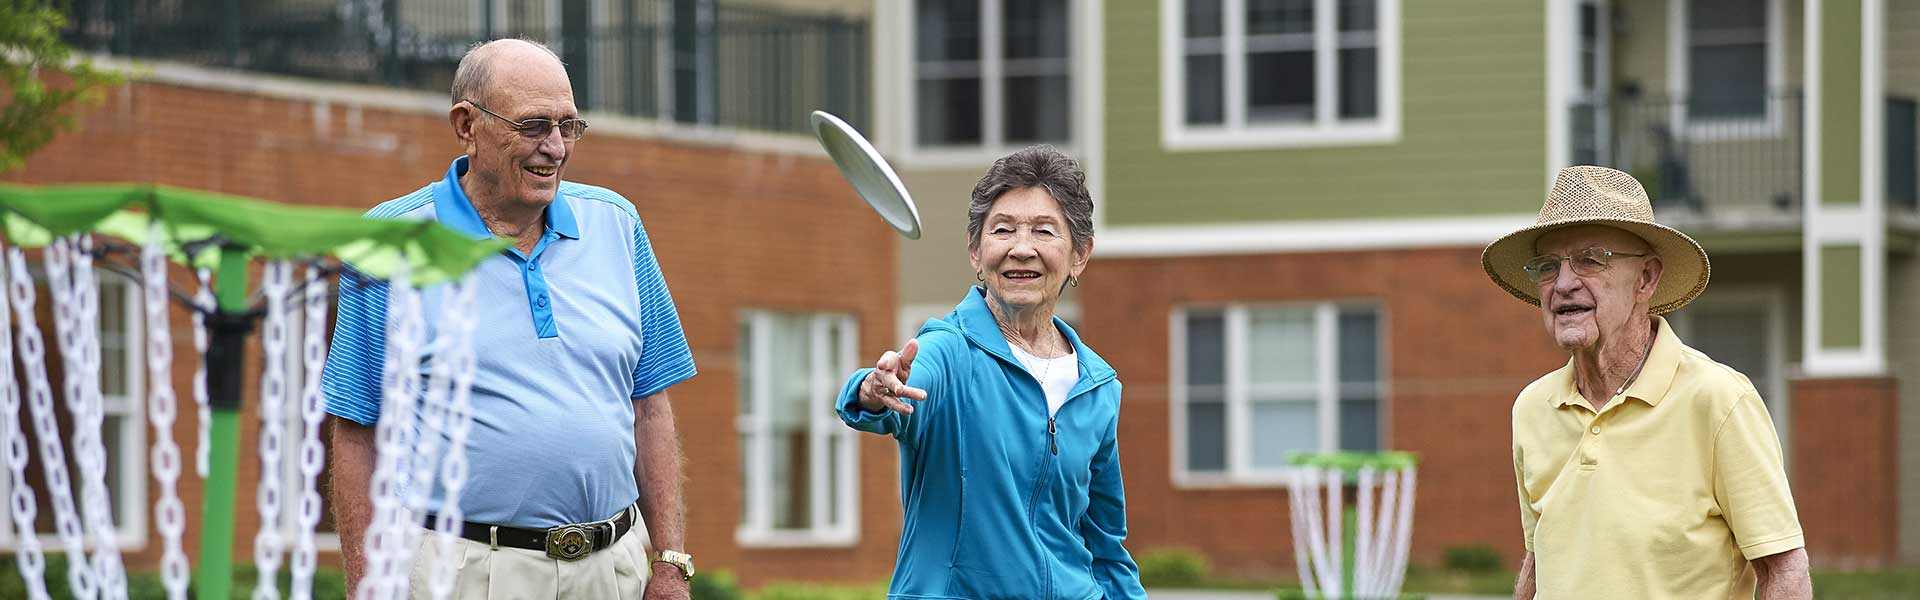 Two older men and an older woman playing disc golf at their Des Moines senior living community